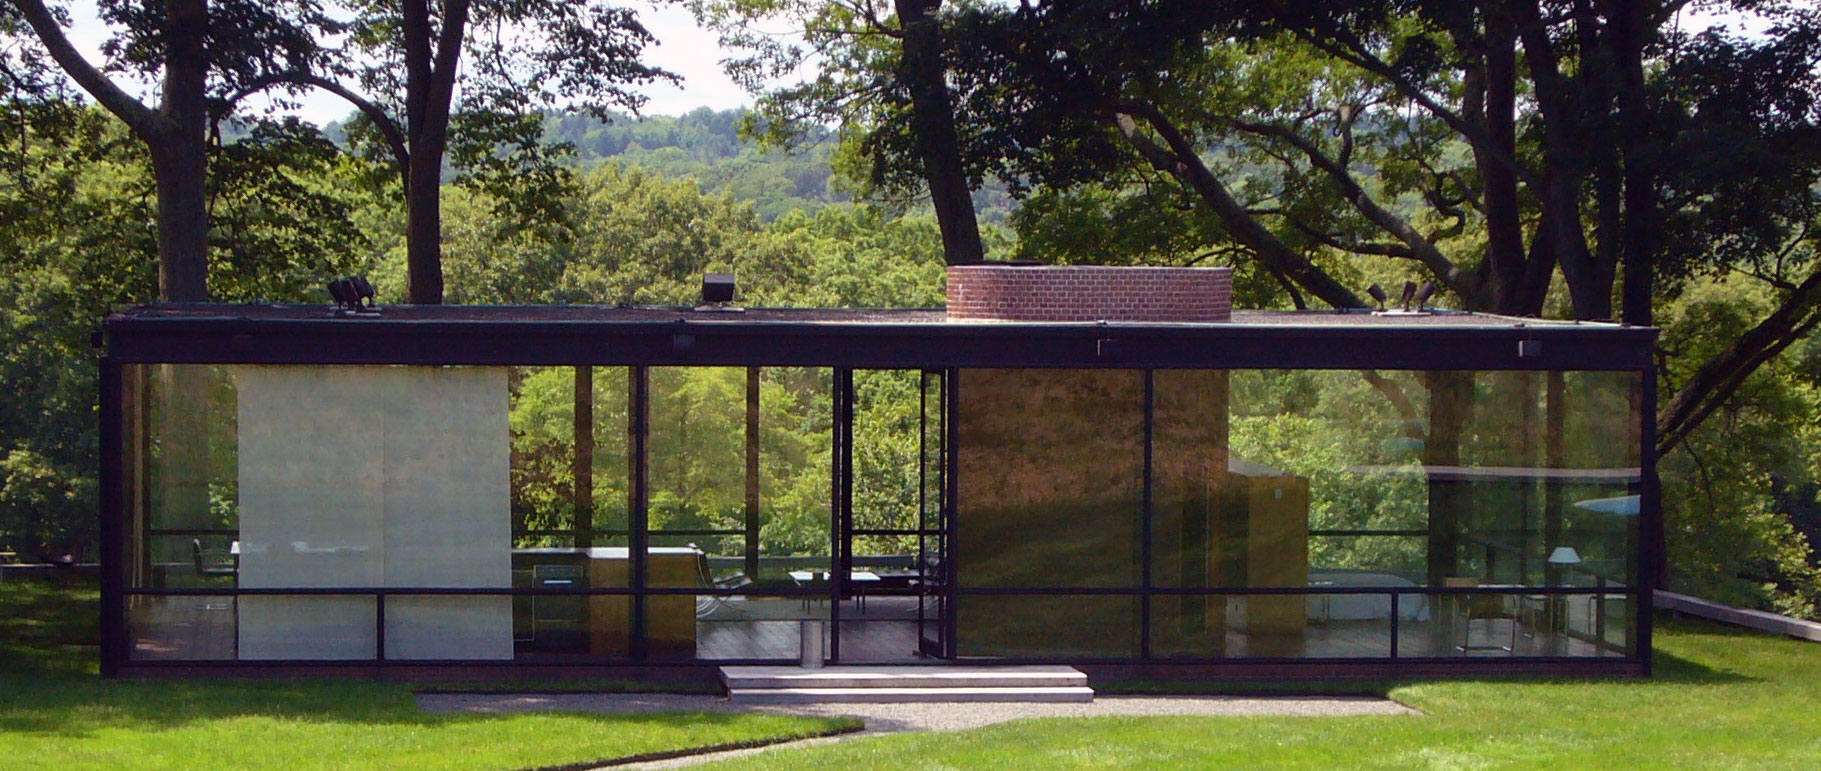 Philip Johnson S Glass House Inside And Out Architecture